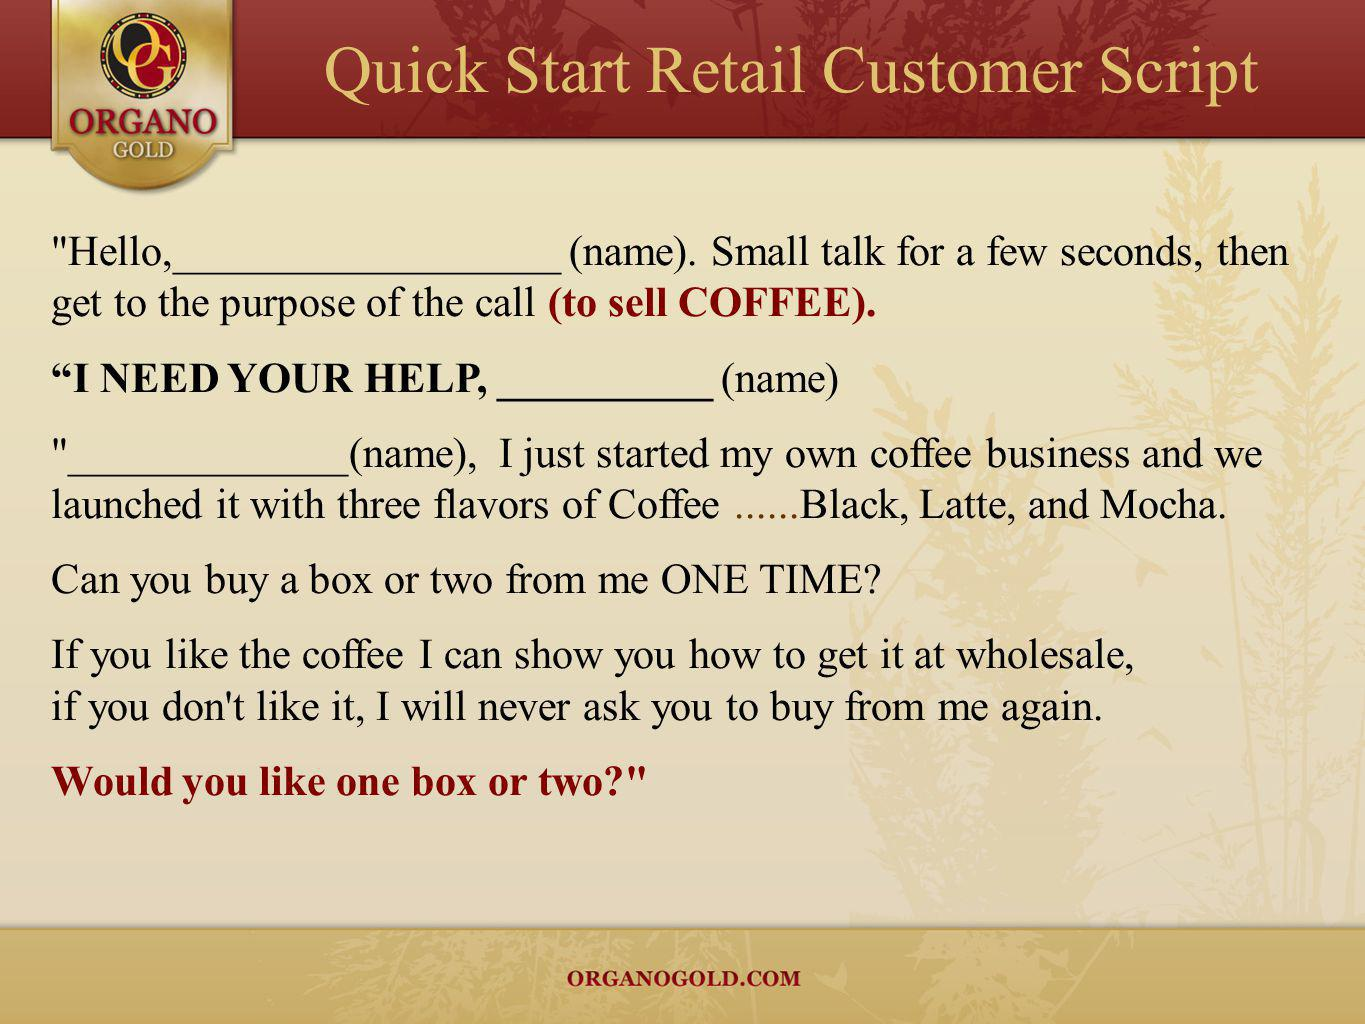 Quick Start Retail Customer Script